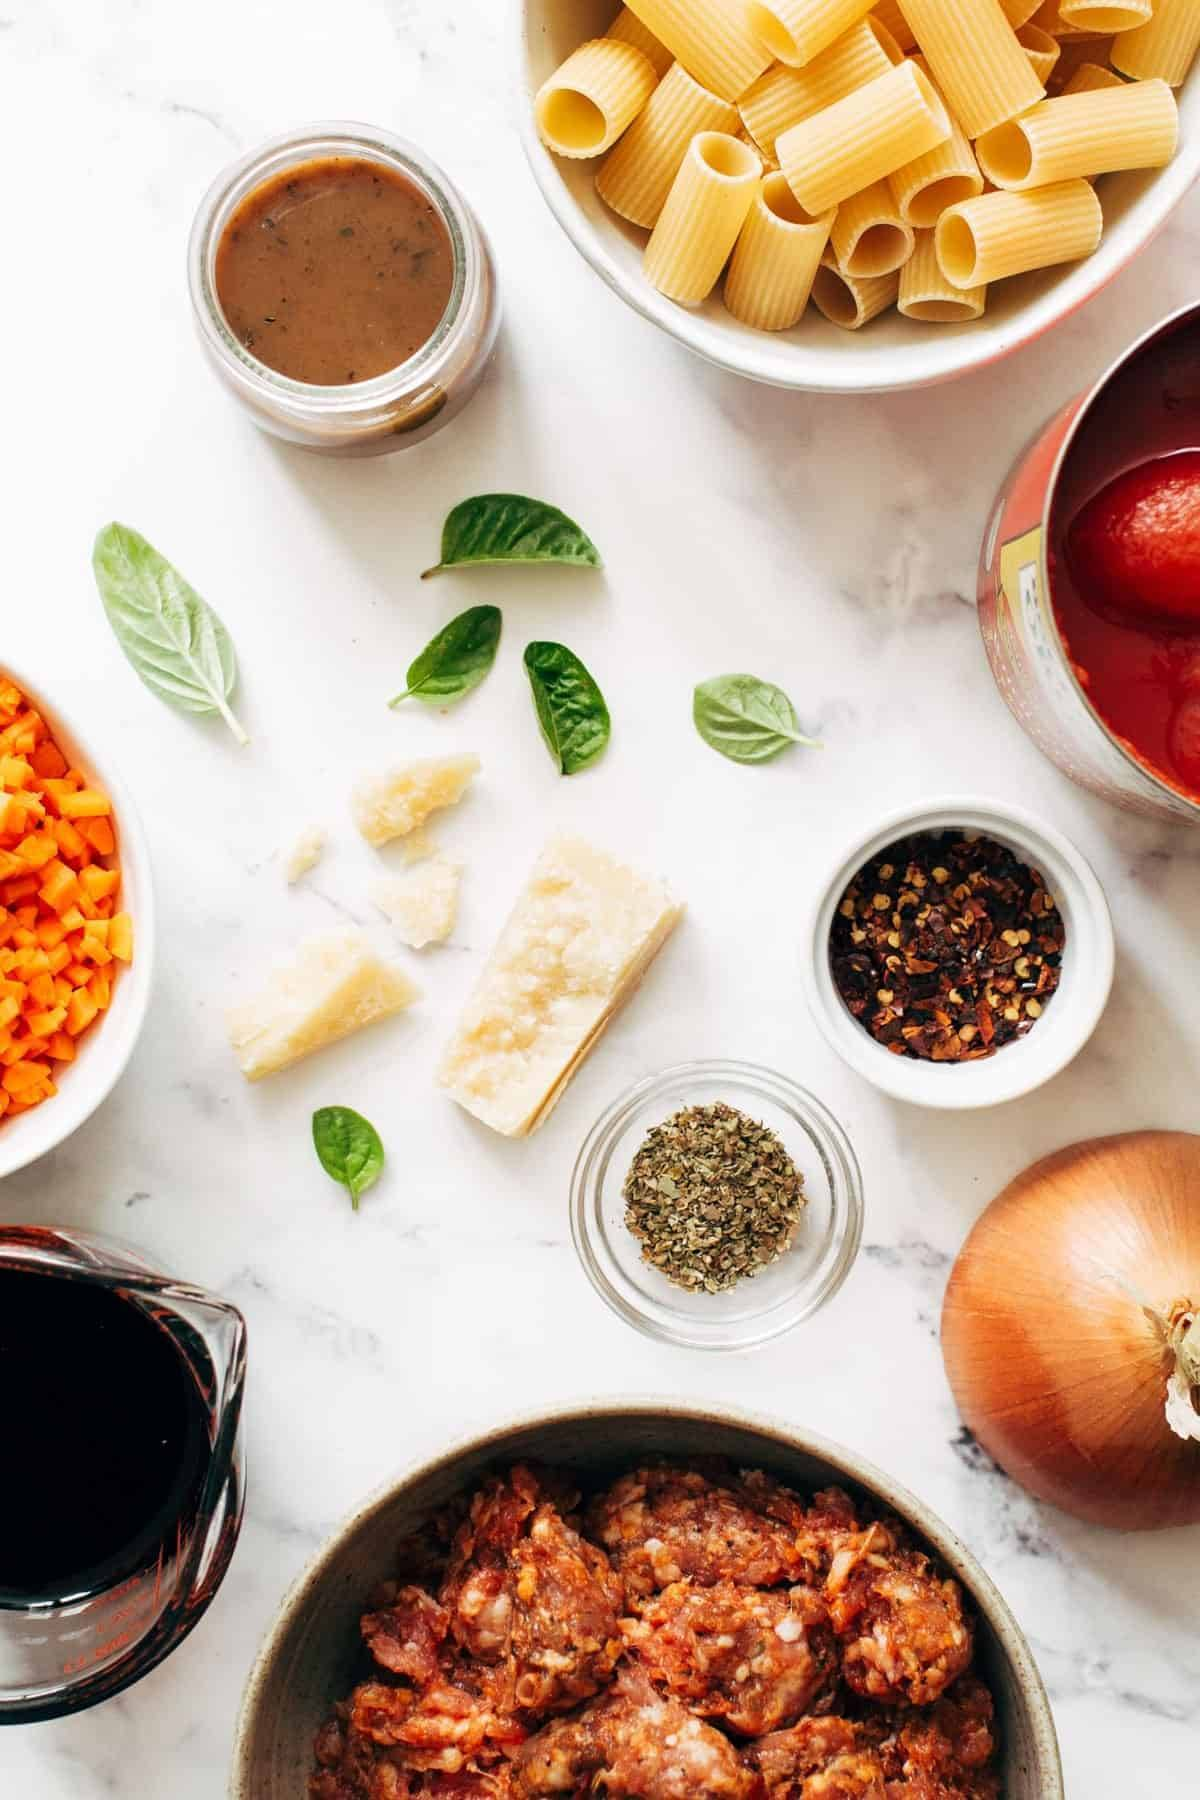 Ingredients in bowls for Spicy Sausage Rigatoni.